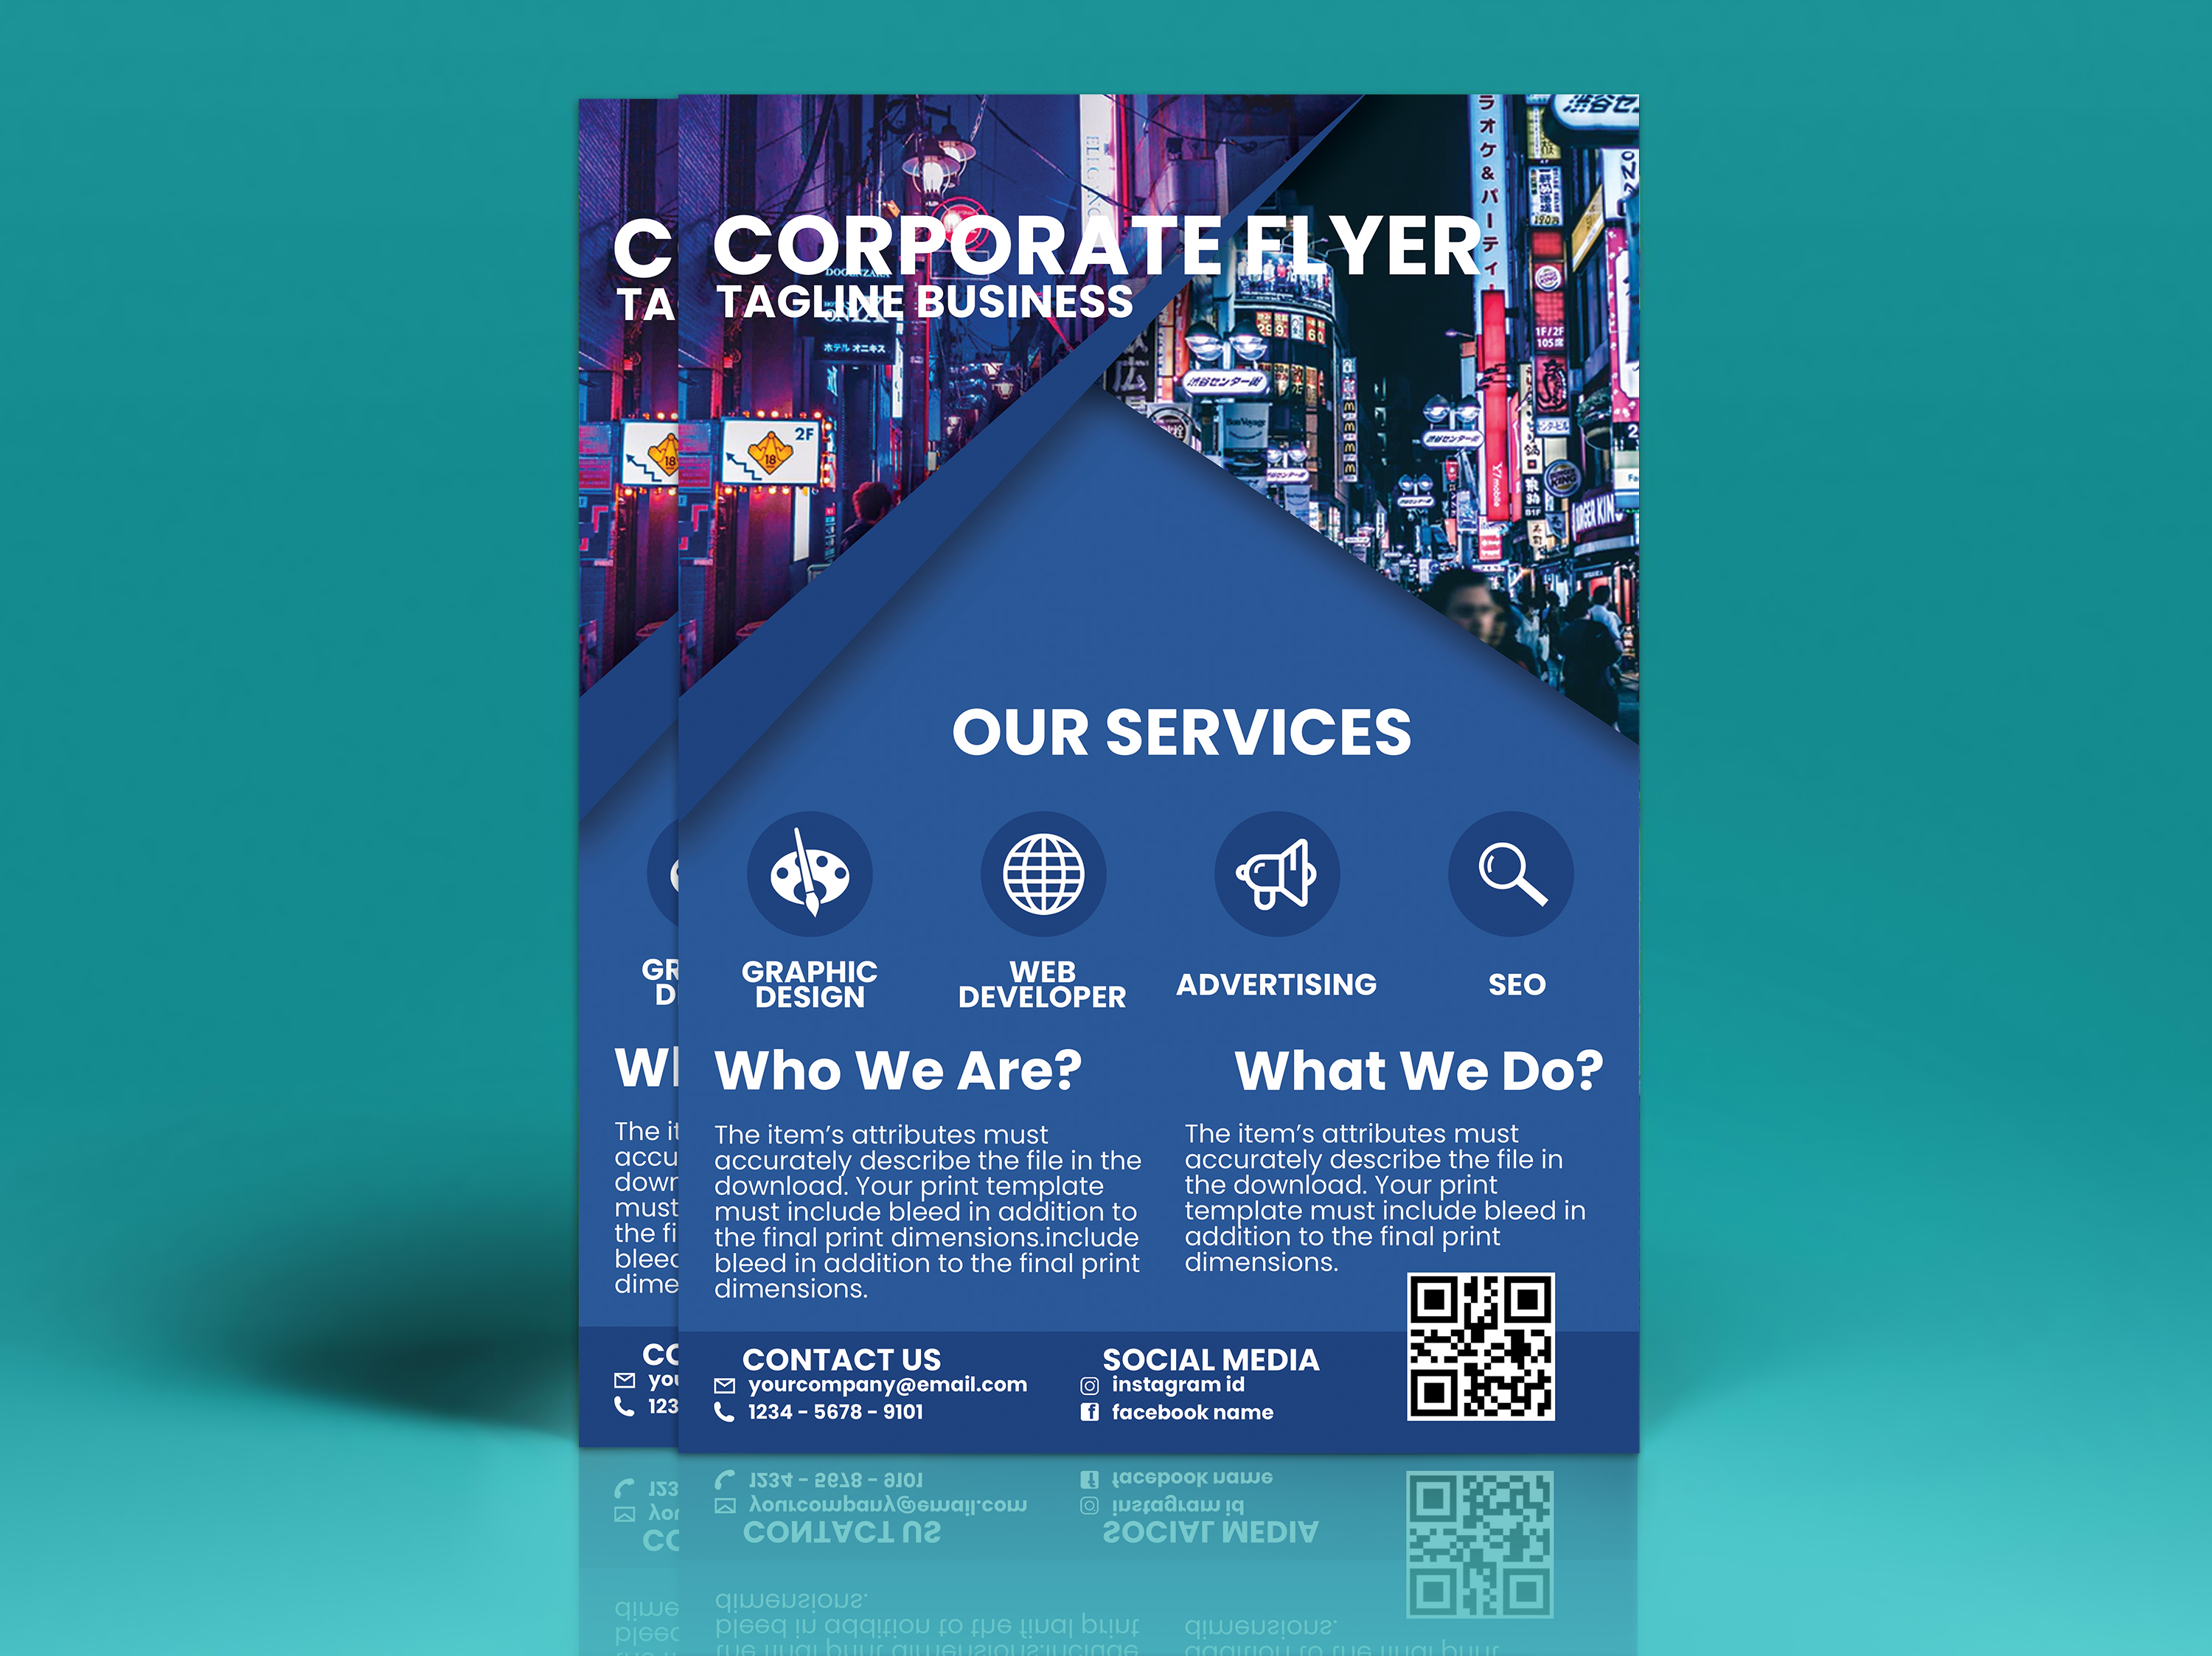 Corporate Flyer Vol. 3 example image 2